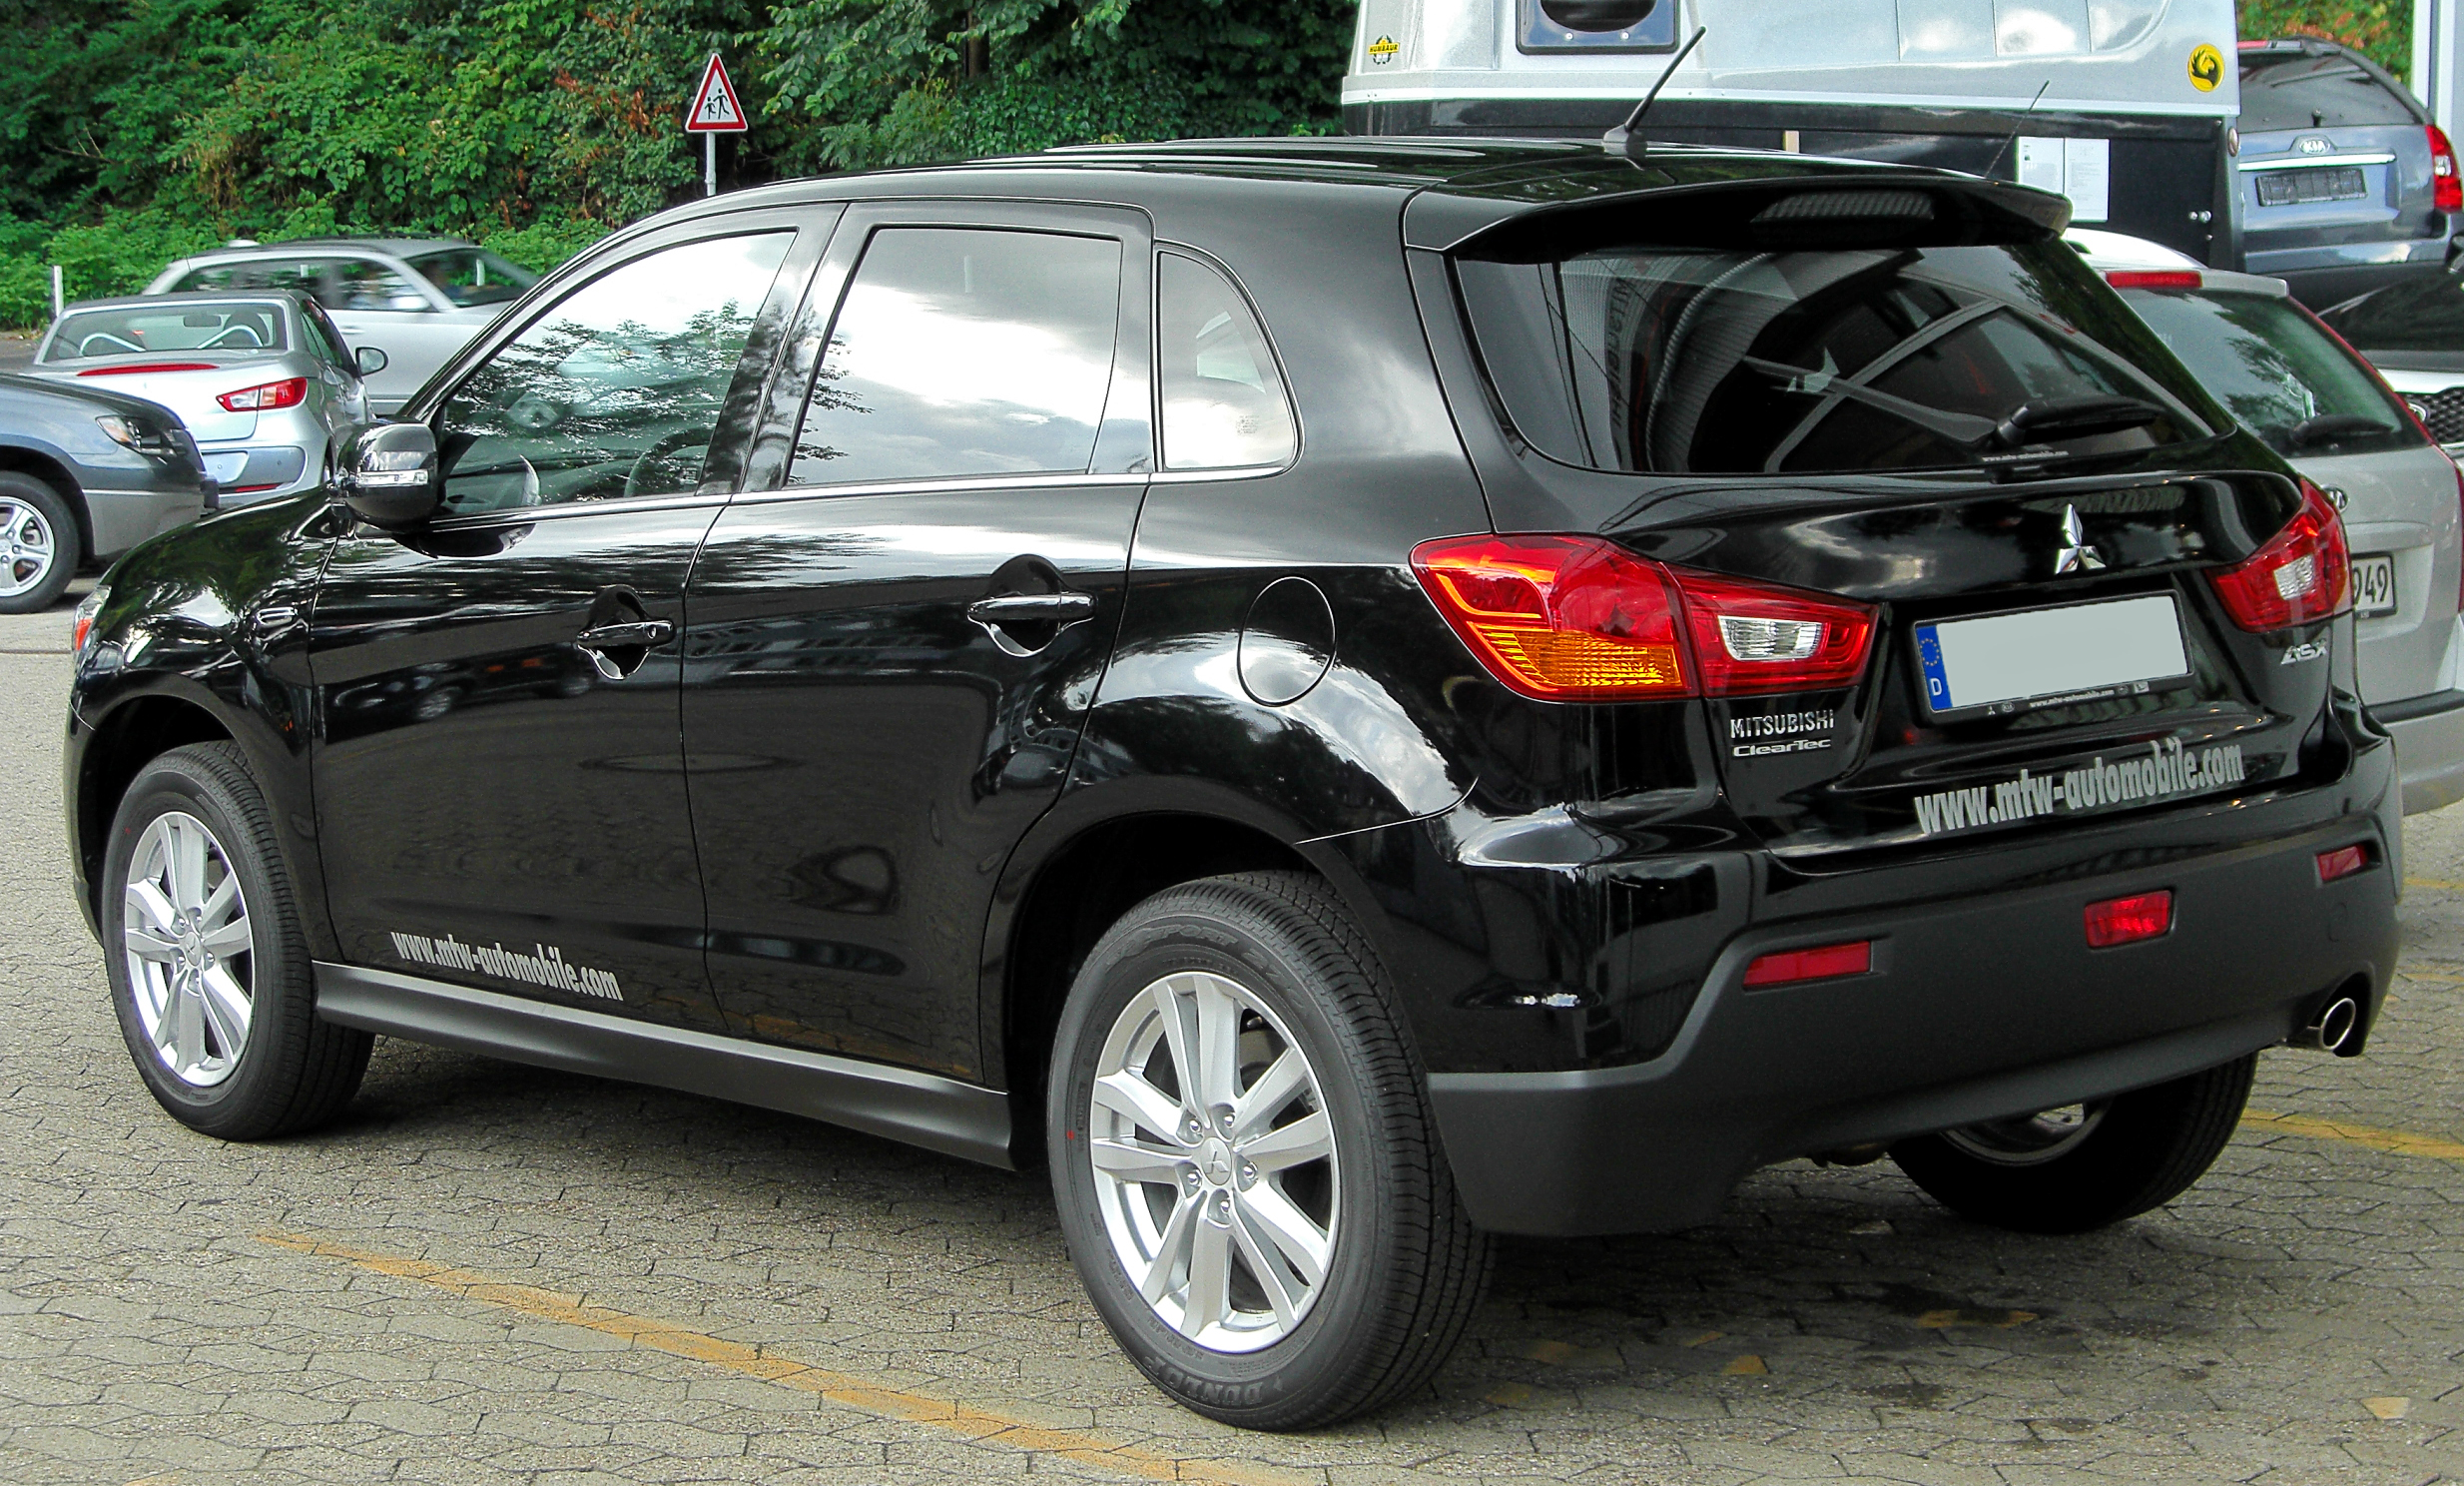 Description Mitsubishi ASX rear 20100717.jpg